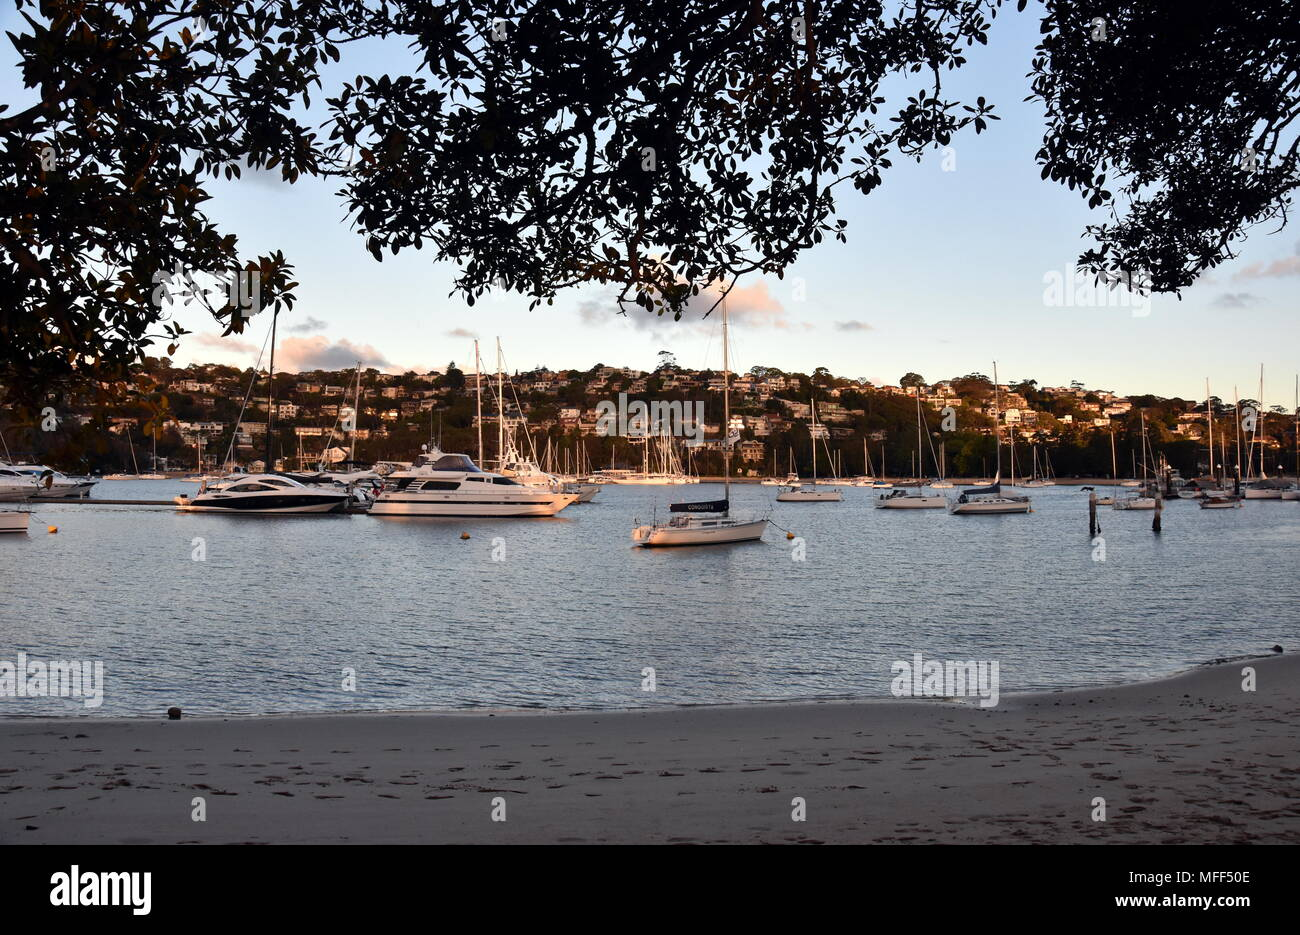 Mosman, Australia - Feb 4, 2018. Many moored yachts and boats in Sandy bay at low tide (The Spit, Sydney, NSW, Australia). - Stock Image